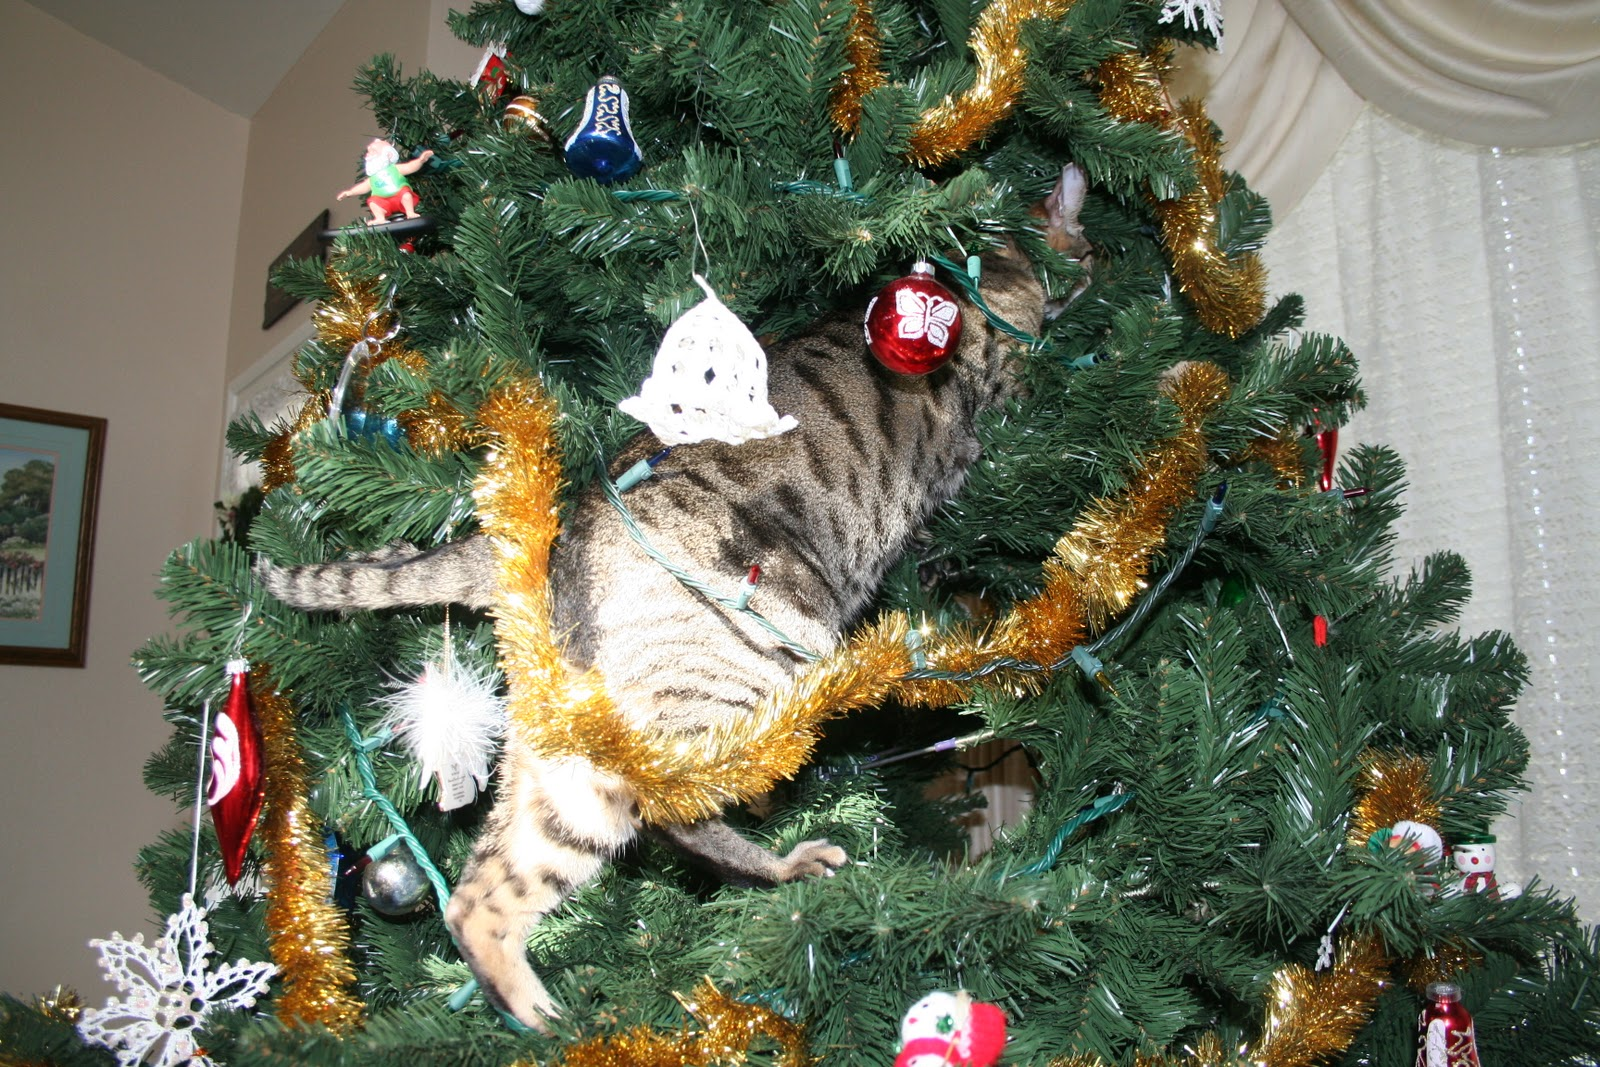 The Human Says This Would be Jacey if He got a Christmas Tree